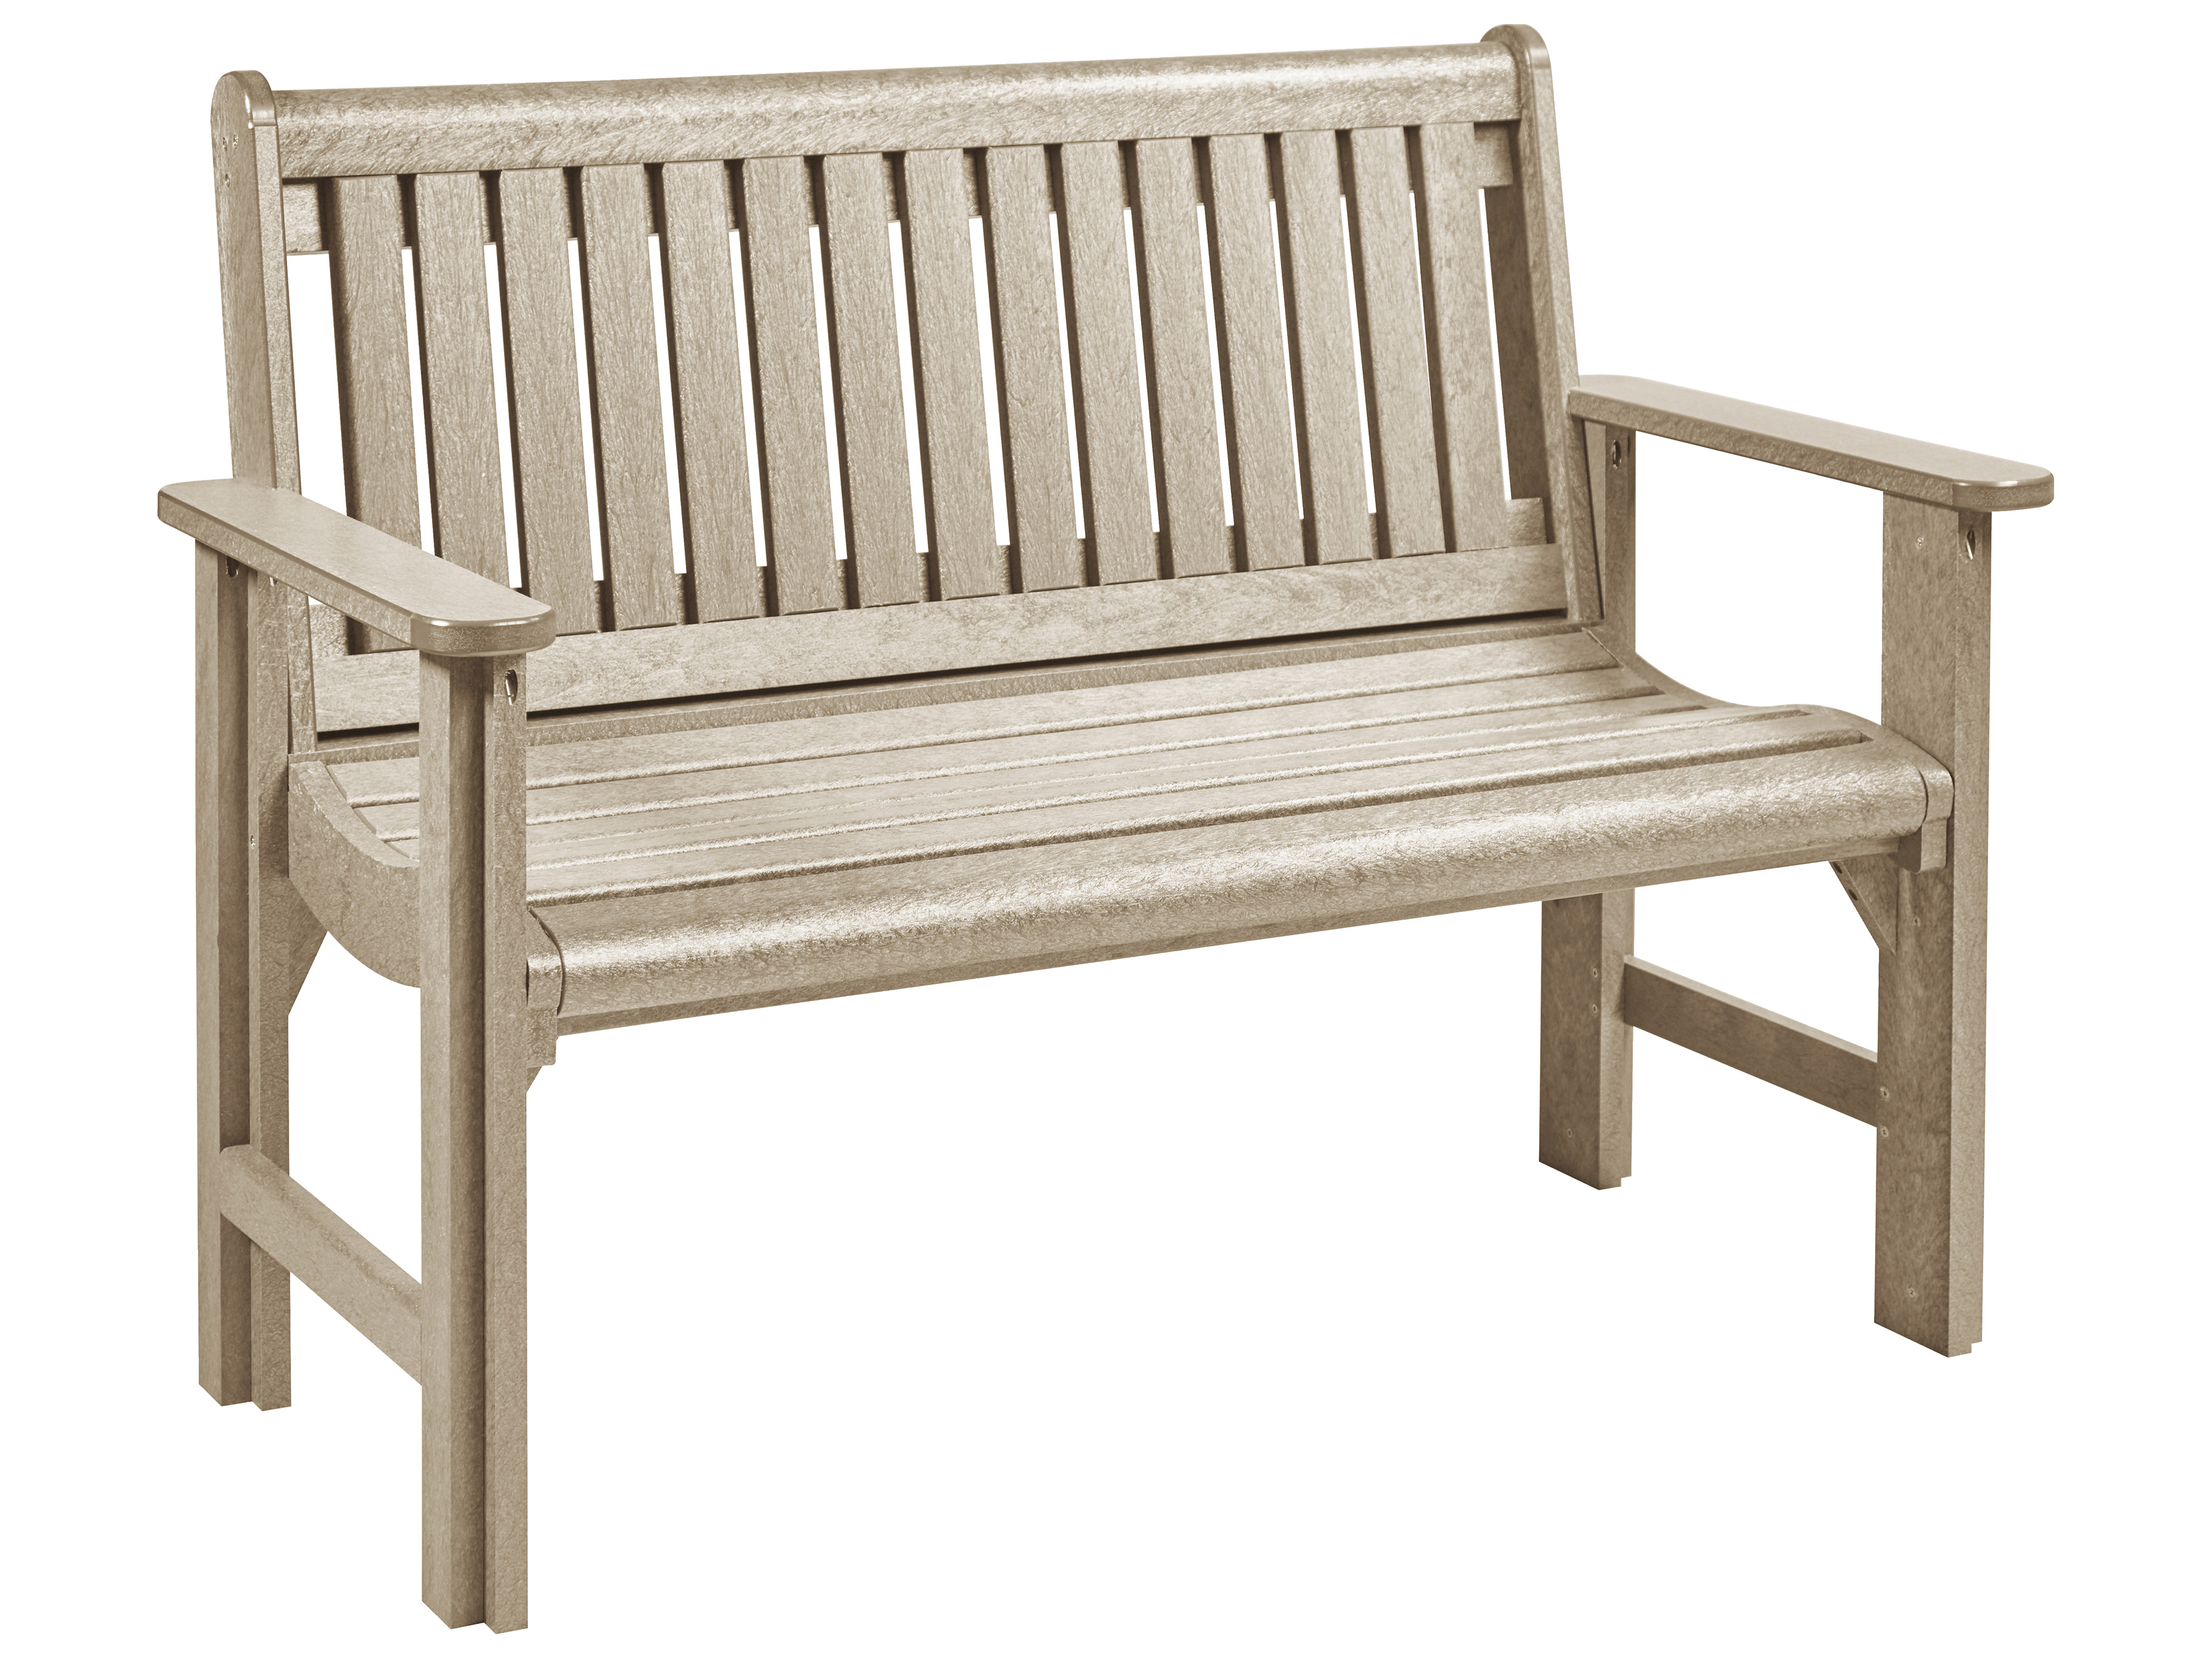 C R Plastic Generation Recycled Plastic Garden Bench Crb01